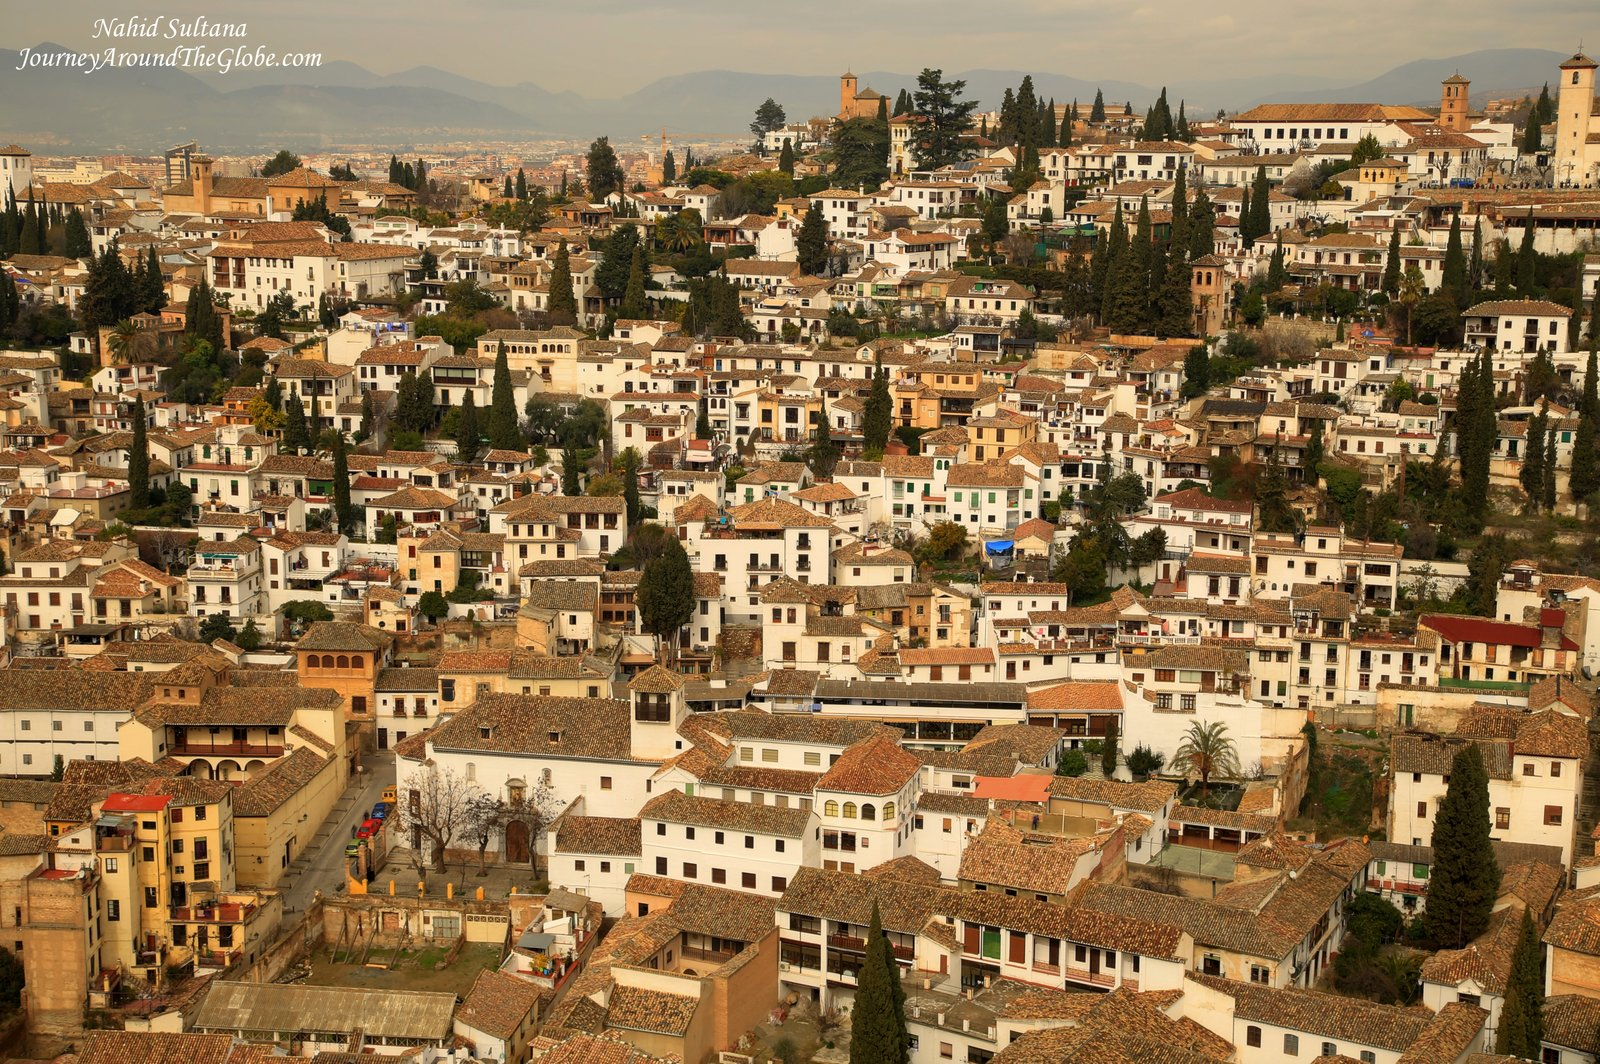 Another stunning view of the whole city of Granada in Spain from Alhambra